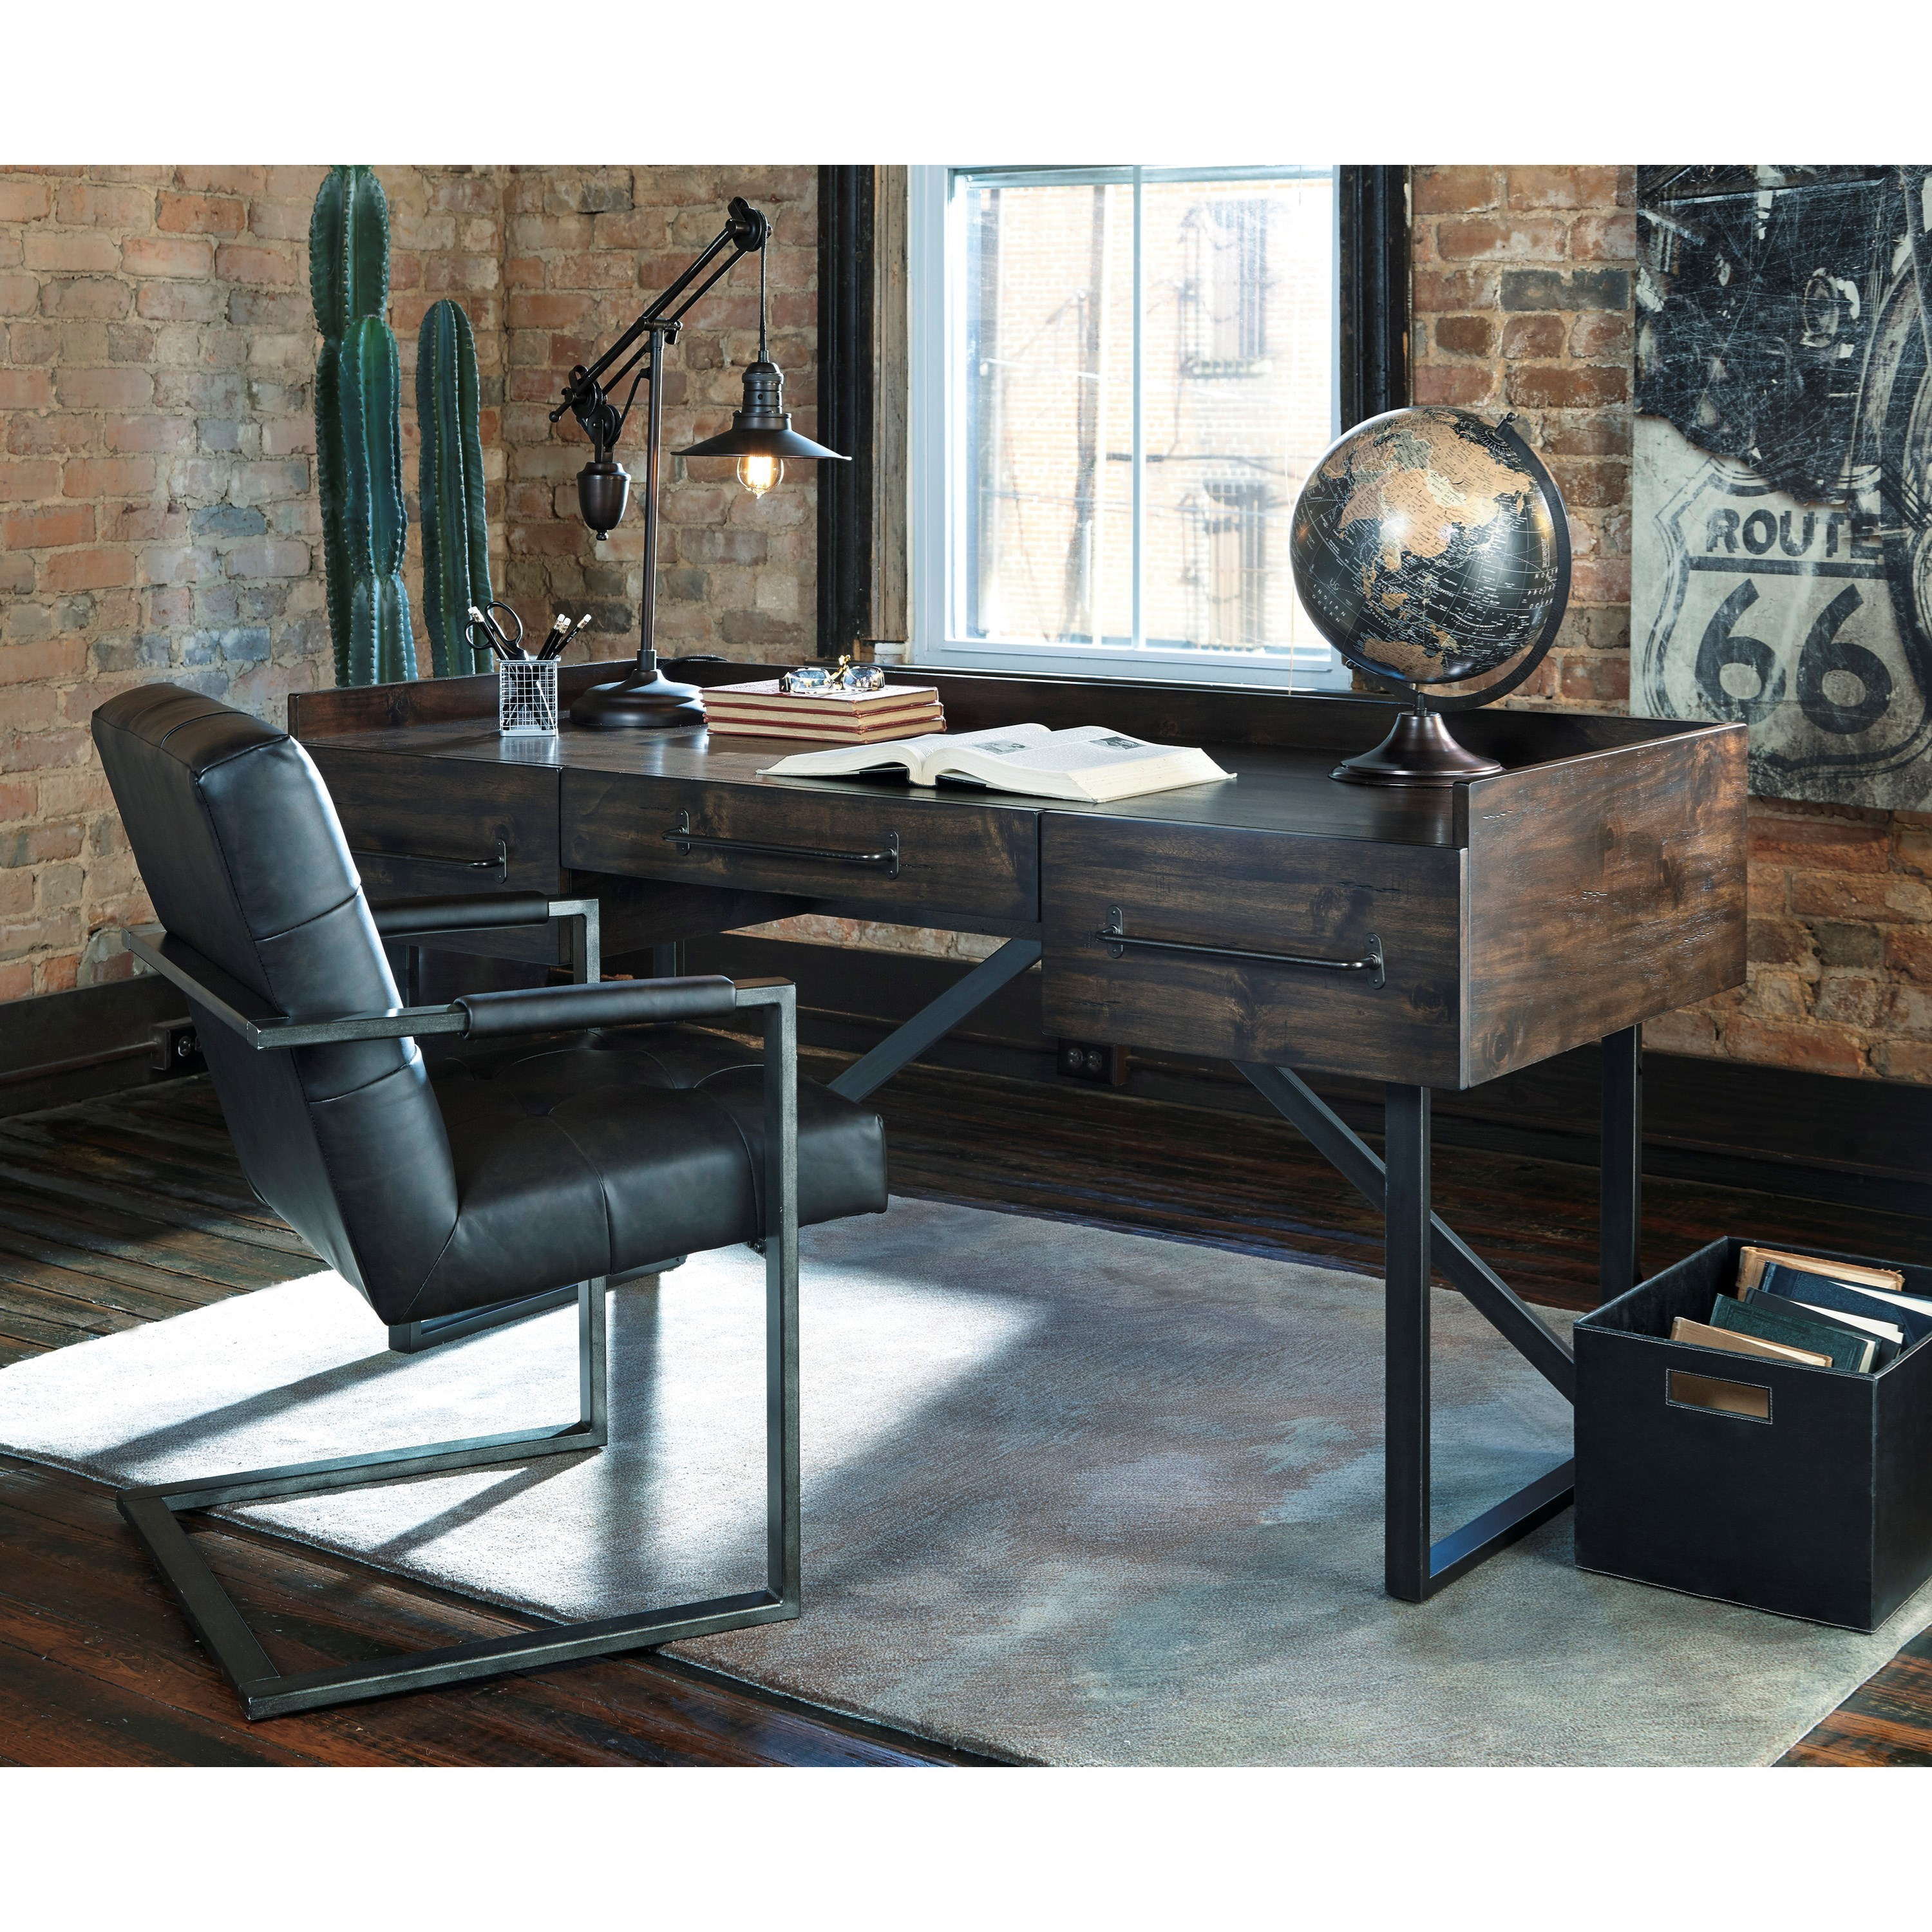 Modern rustic industrial home office desk with steel base for Modern home office desk